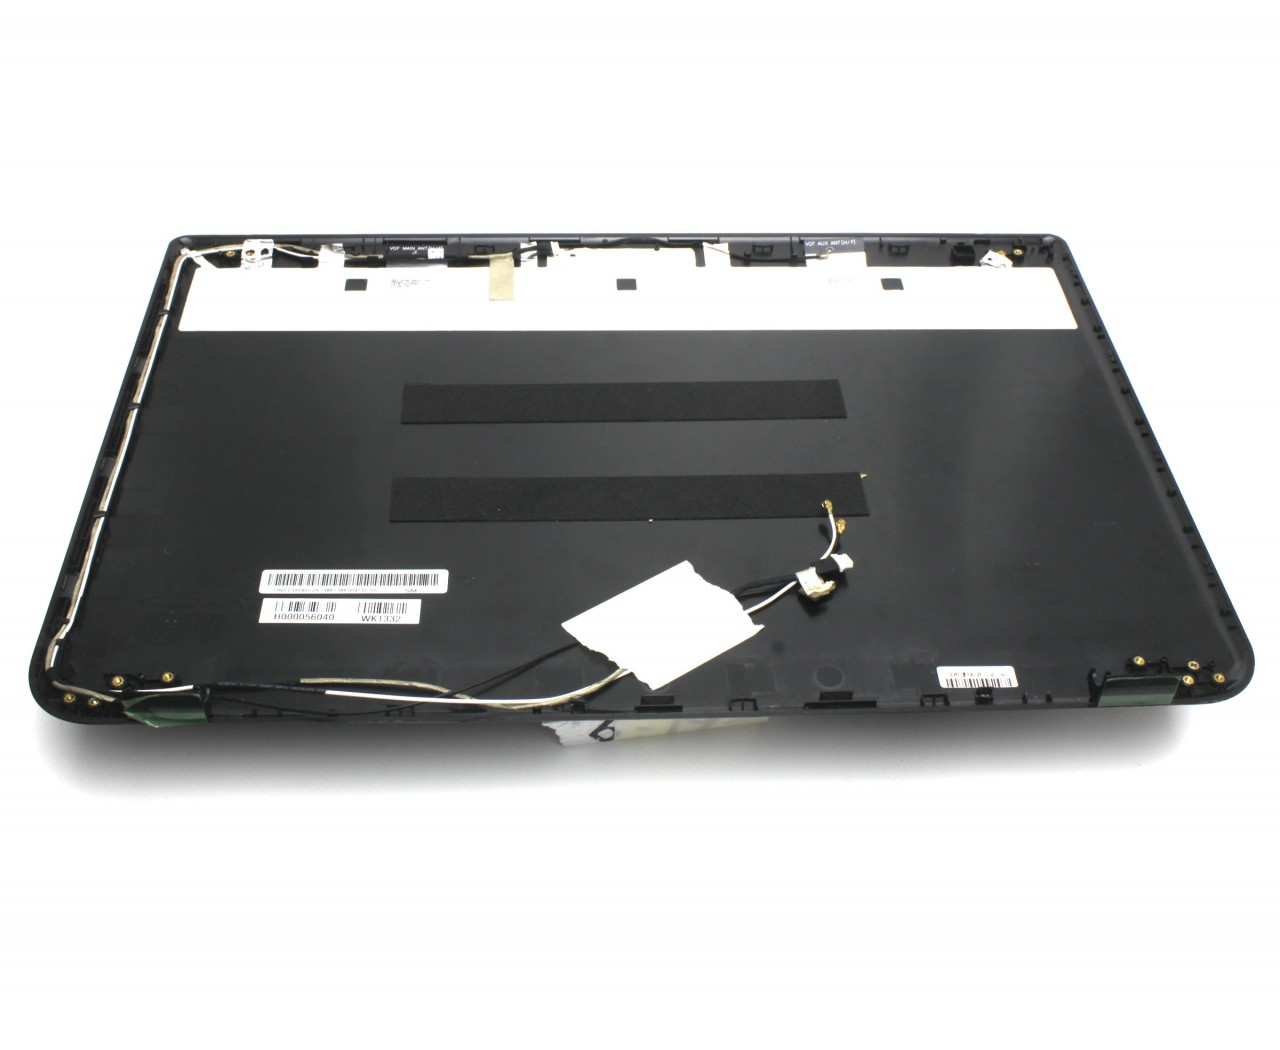 Capac Display BackCover Toshiba H000056060 Carcasa Display Neagra imagine powerlaptop.ro 2021